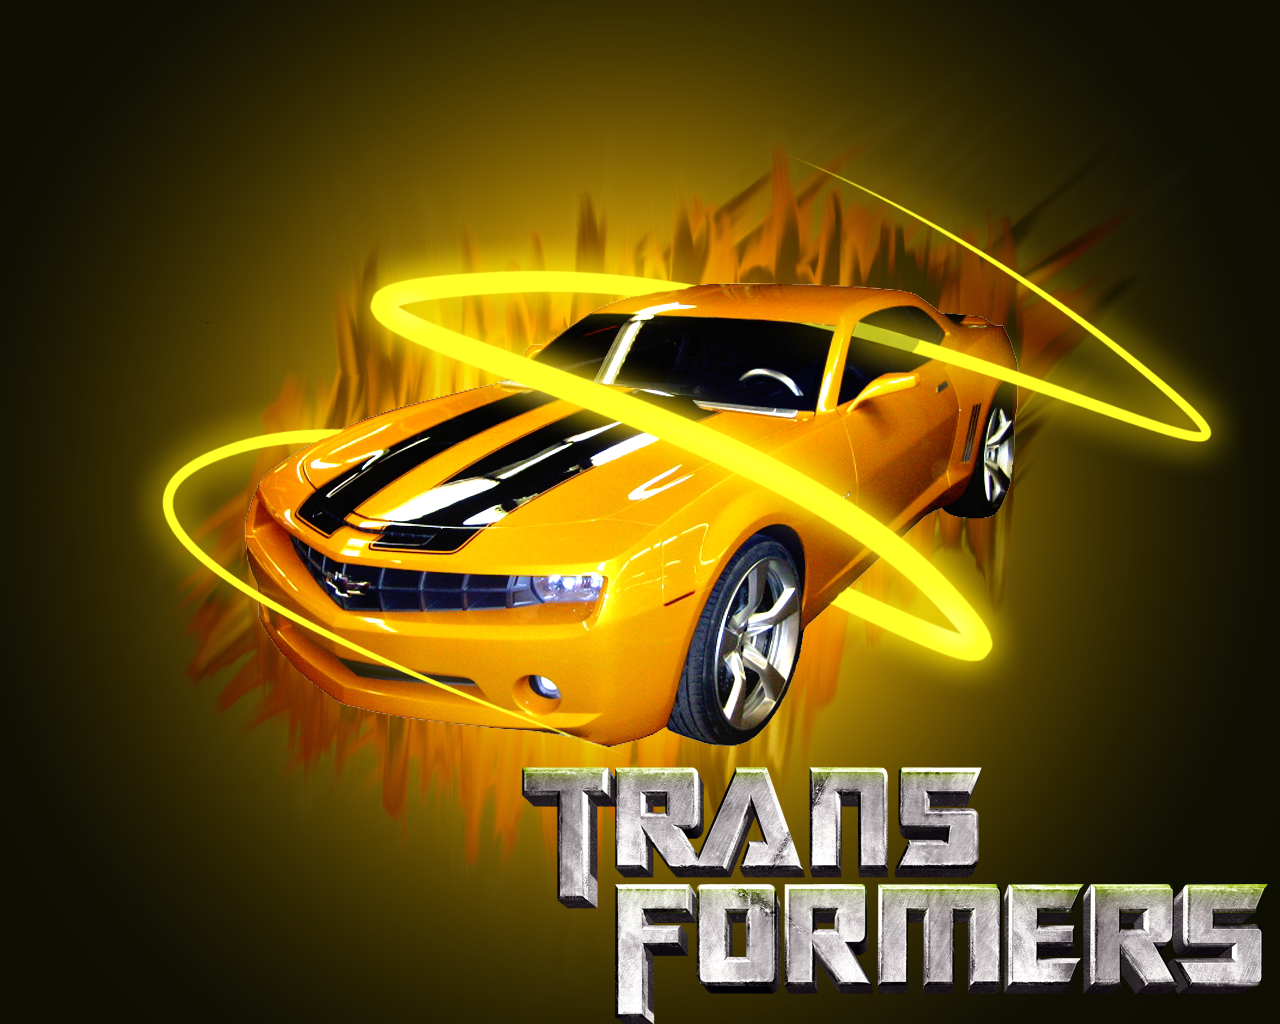 Bumble bee car wallpaper by solak designs on deviantart - Transformers bumblebee car wallpaper ...